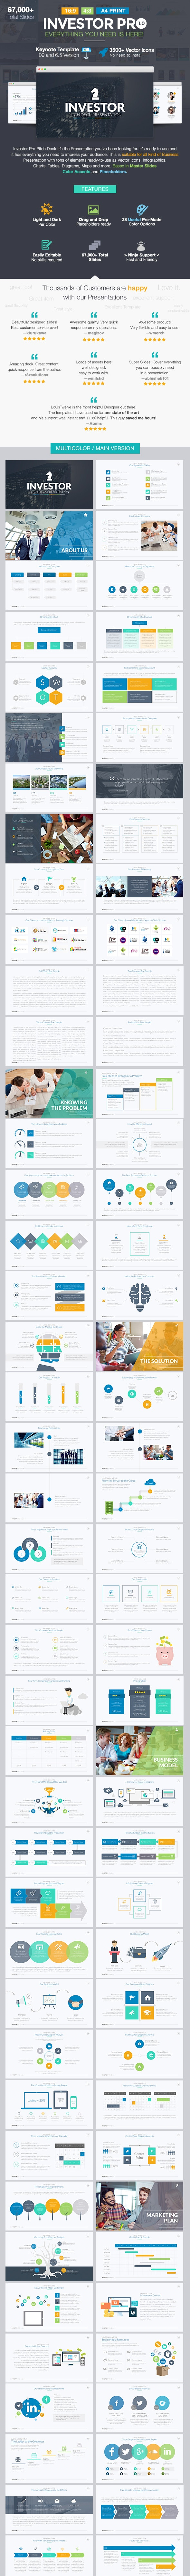 Investor Pitch Deck Keynote Template - Keynote Templates Presentation Templates